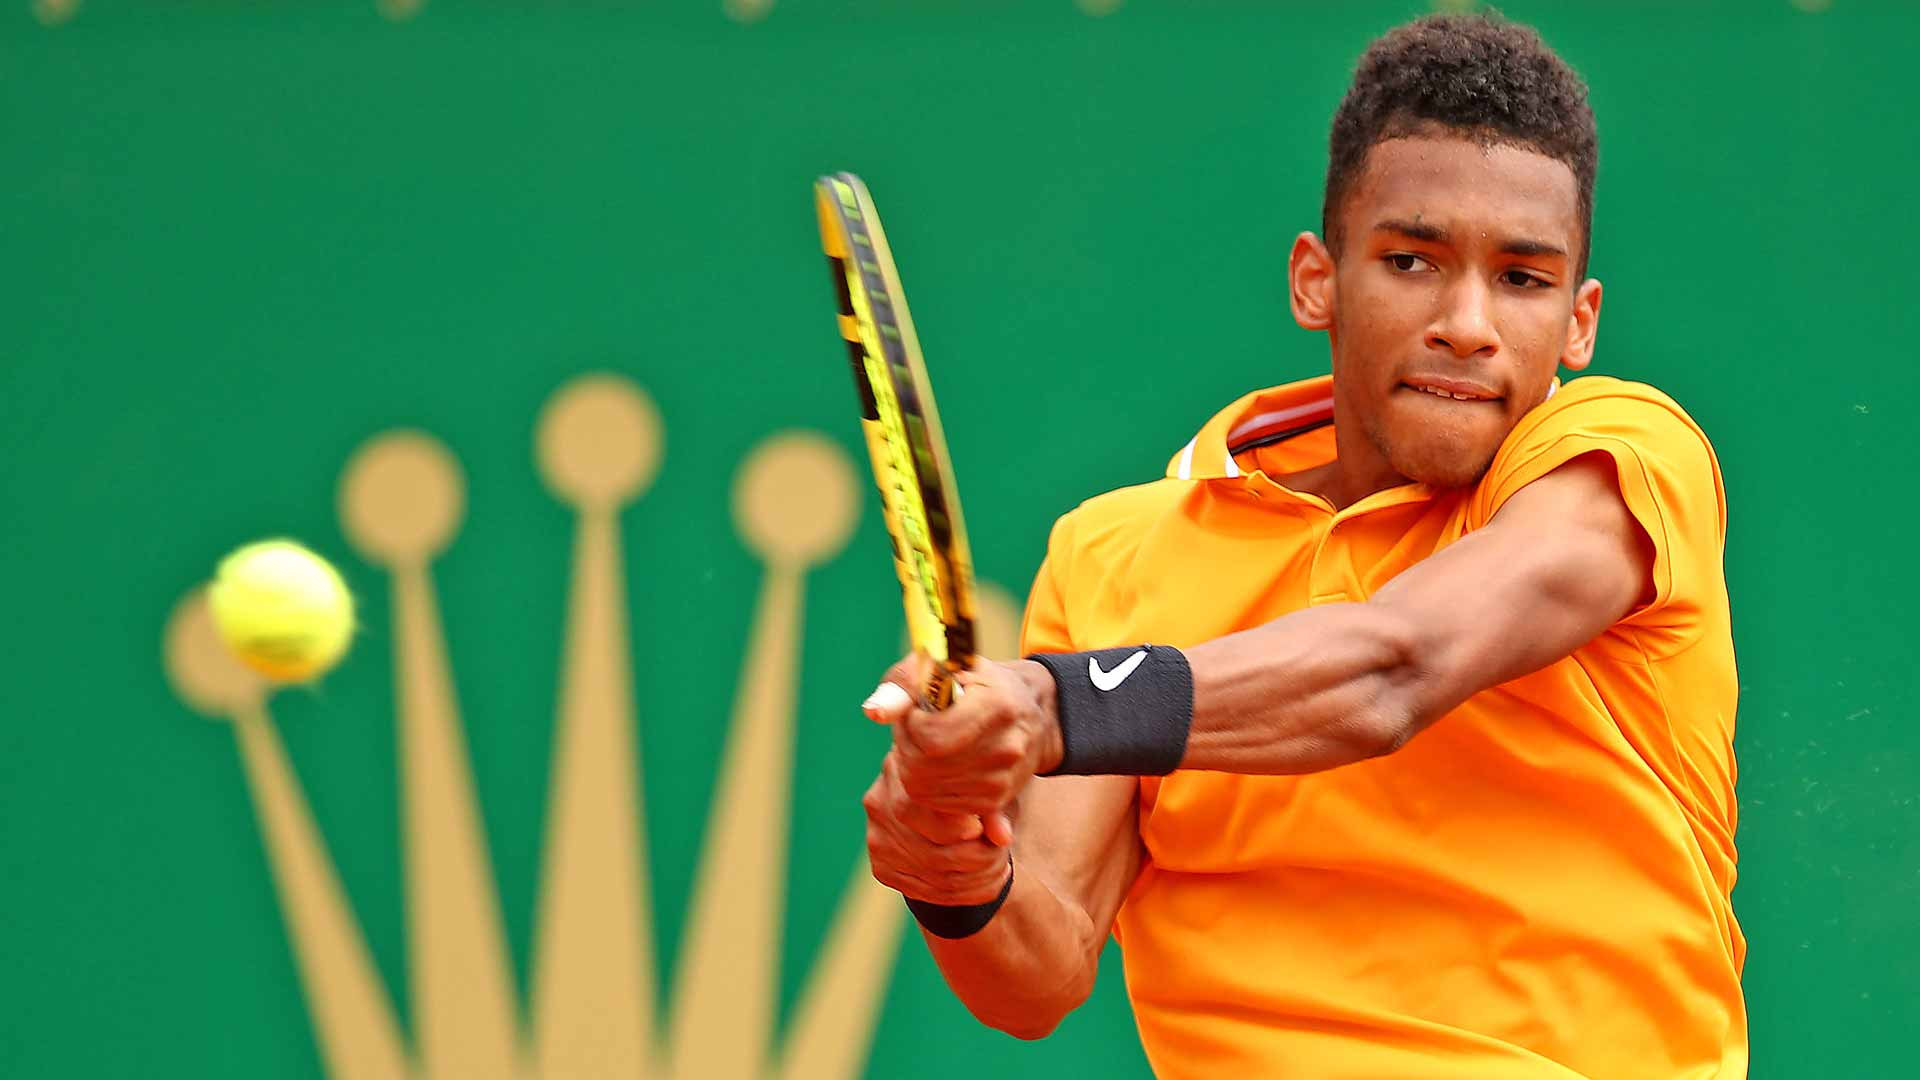 Felix Auger-Aliassime hits a backhand in Monte-Carlo